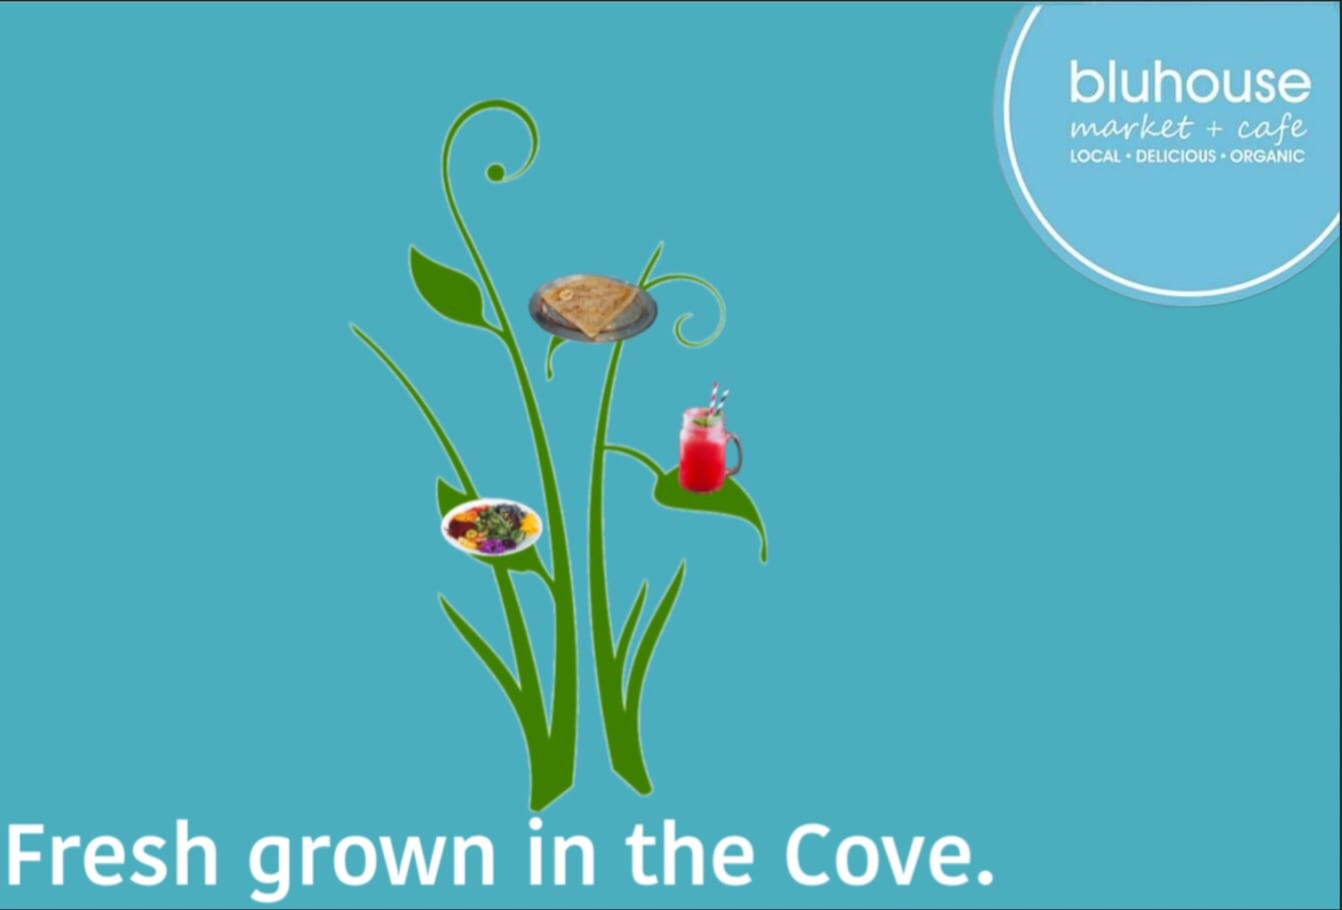 Fresh grown in the cove bluhouse ad